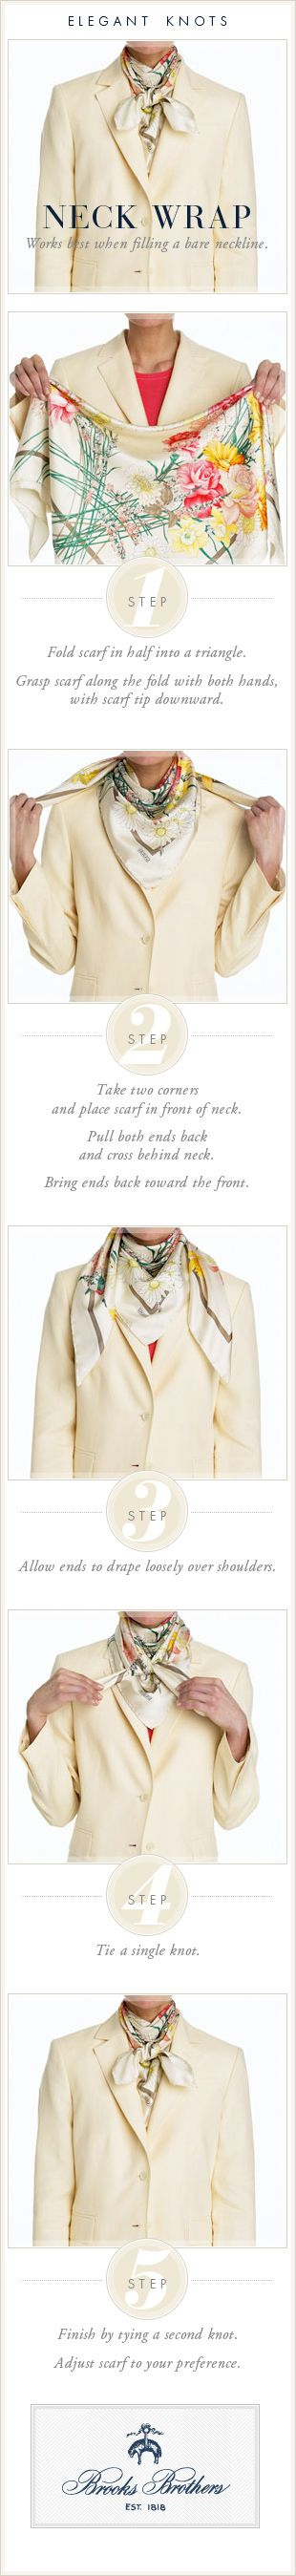 The Neck Wrap | Brooks Brothers